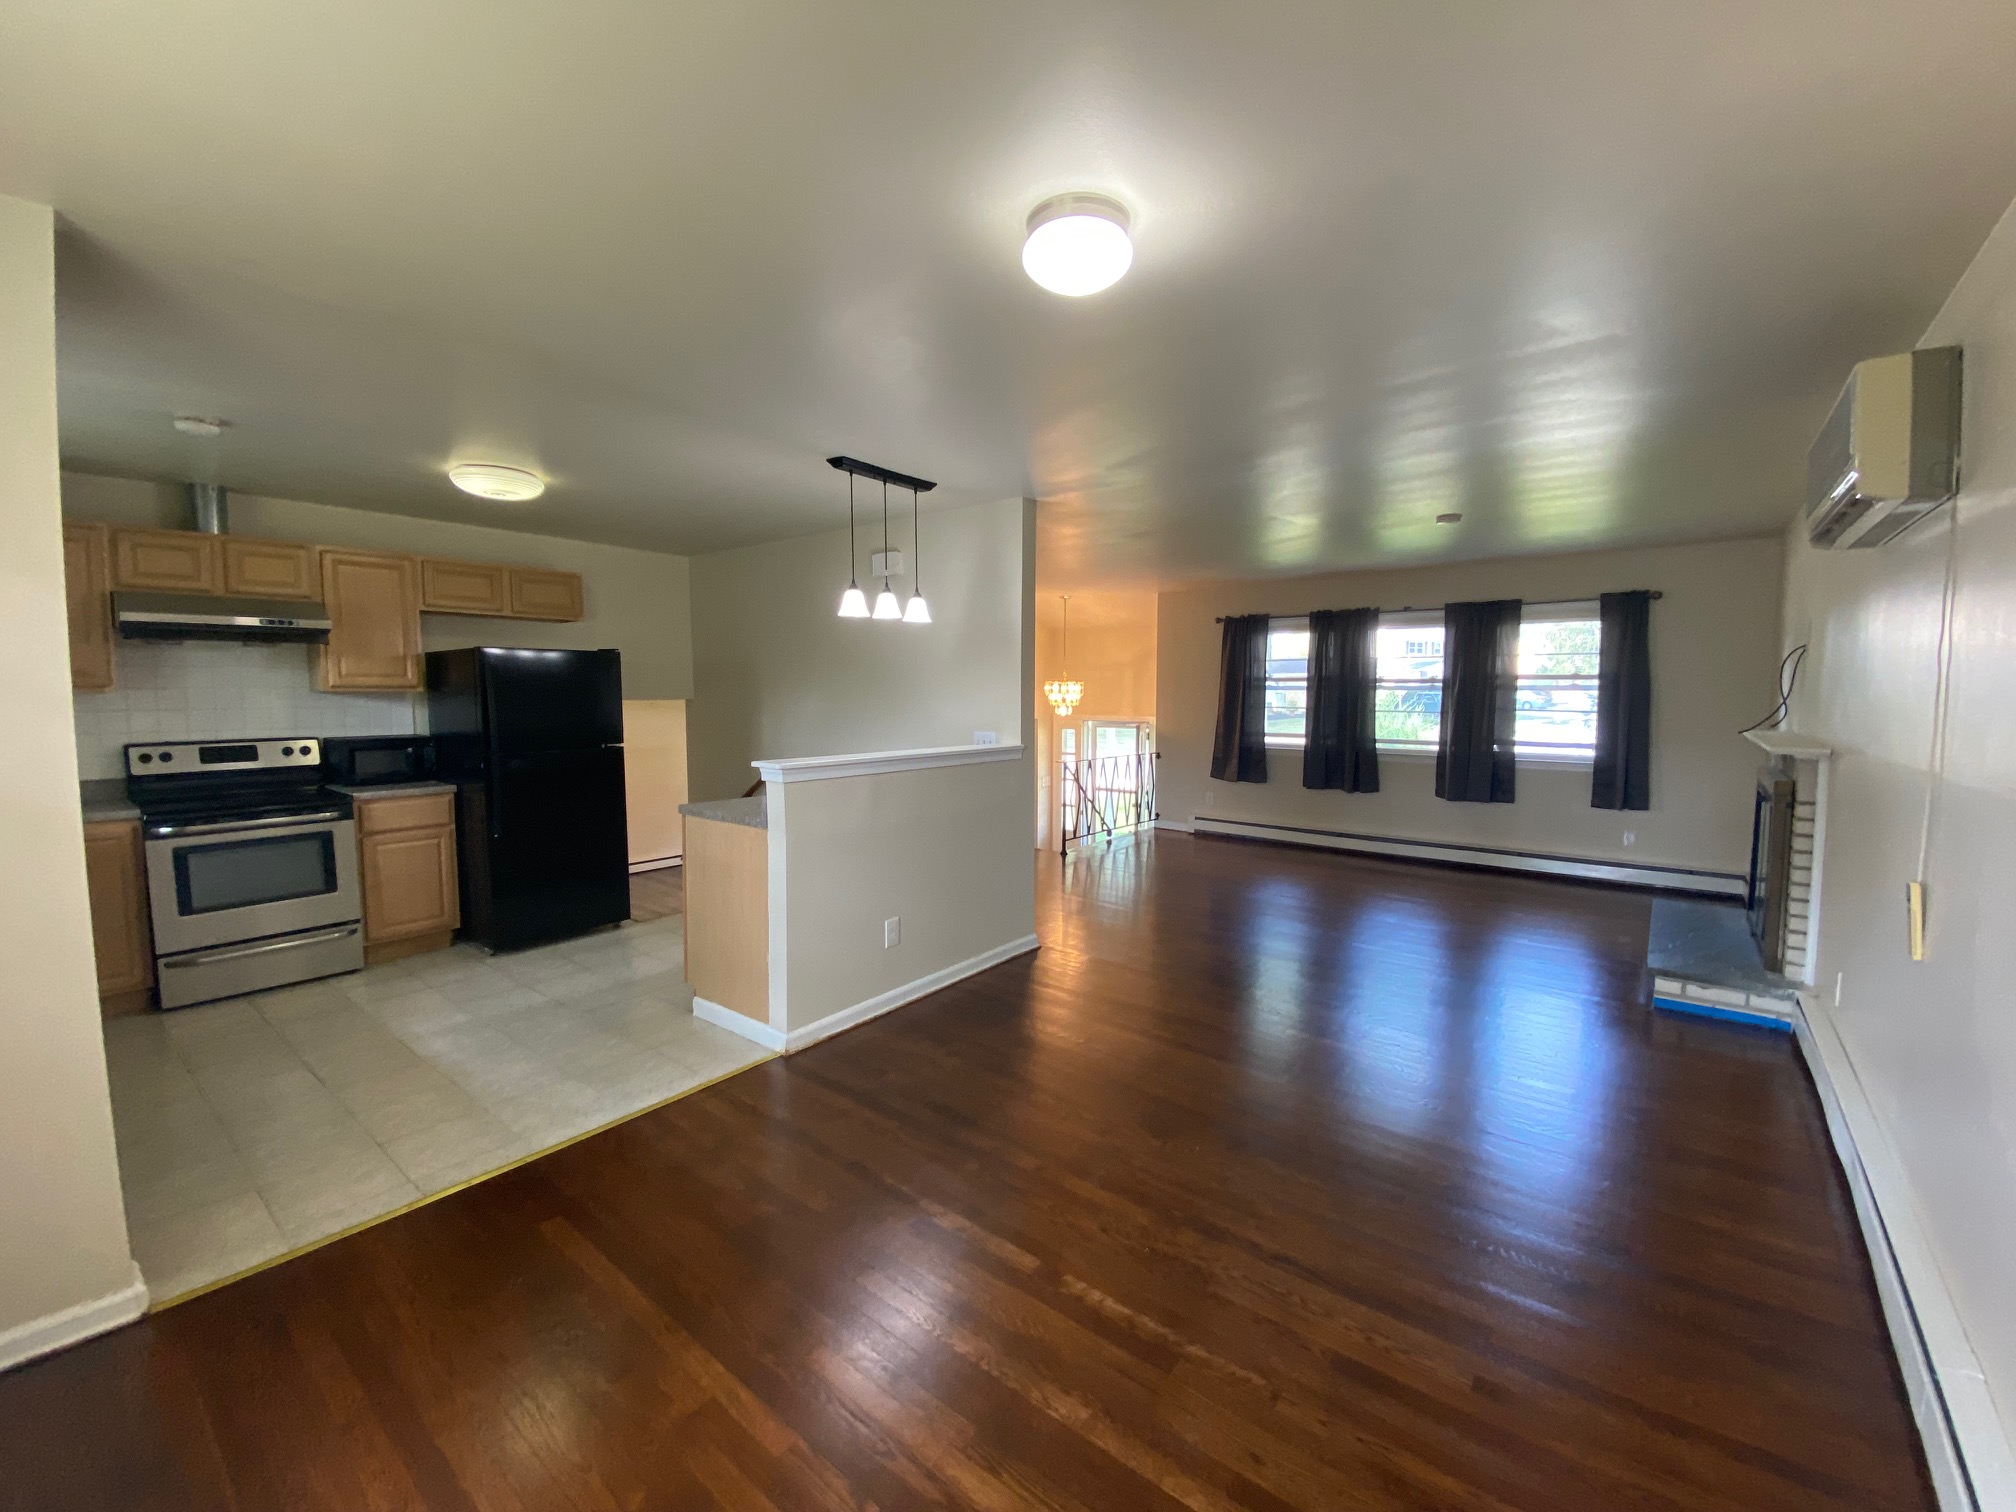 2621 Grendon Dr, Wilmington, Delaware 19808, 4 Rooms Rooms,2 BathroomsBathrooms,House,For Rent,Grendon Dr,1166